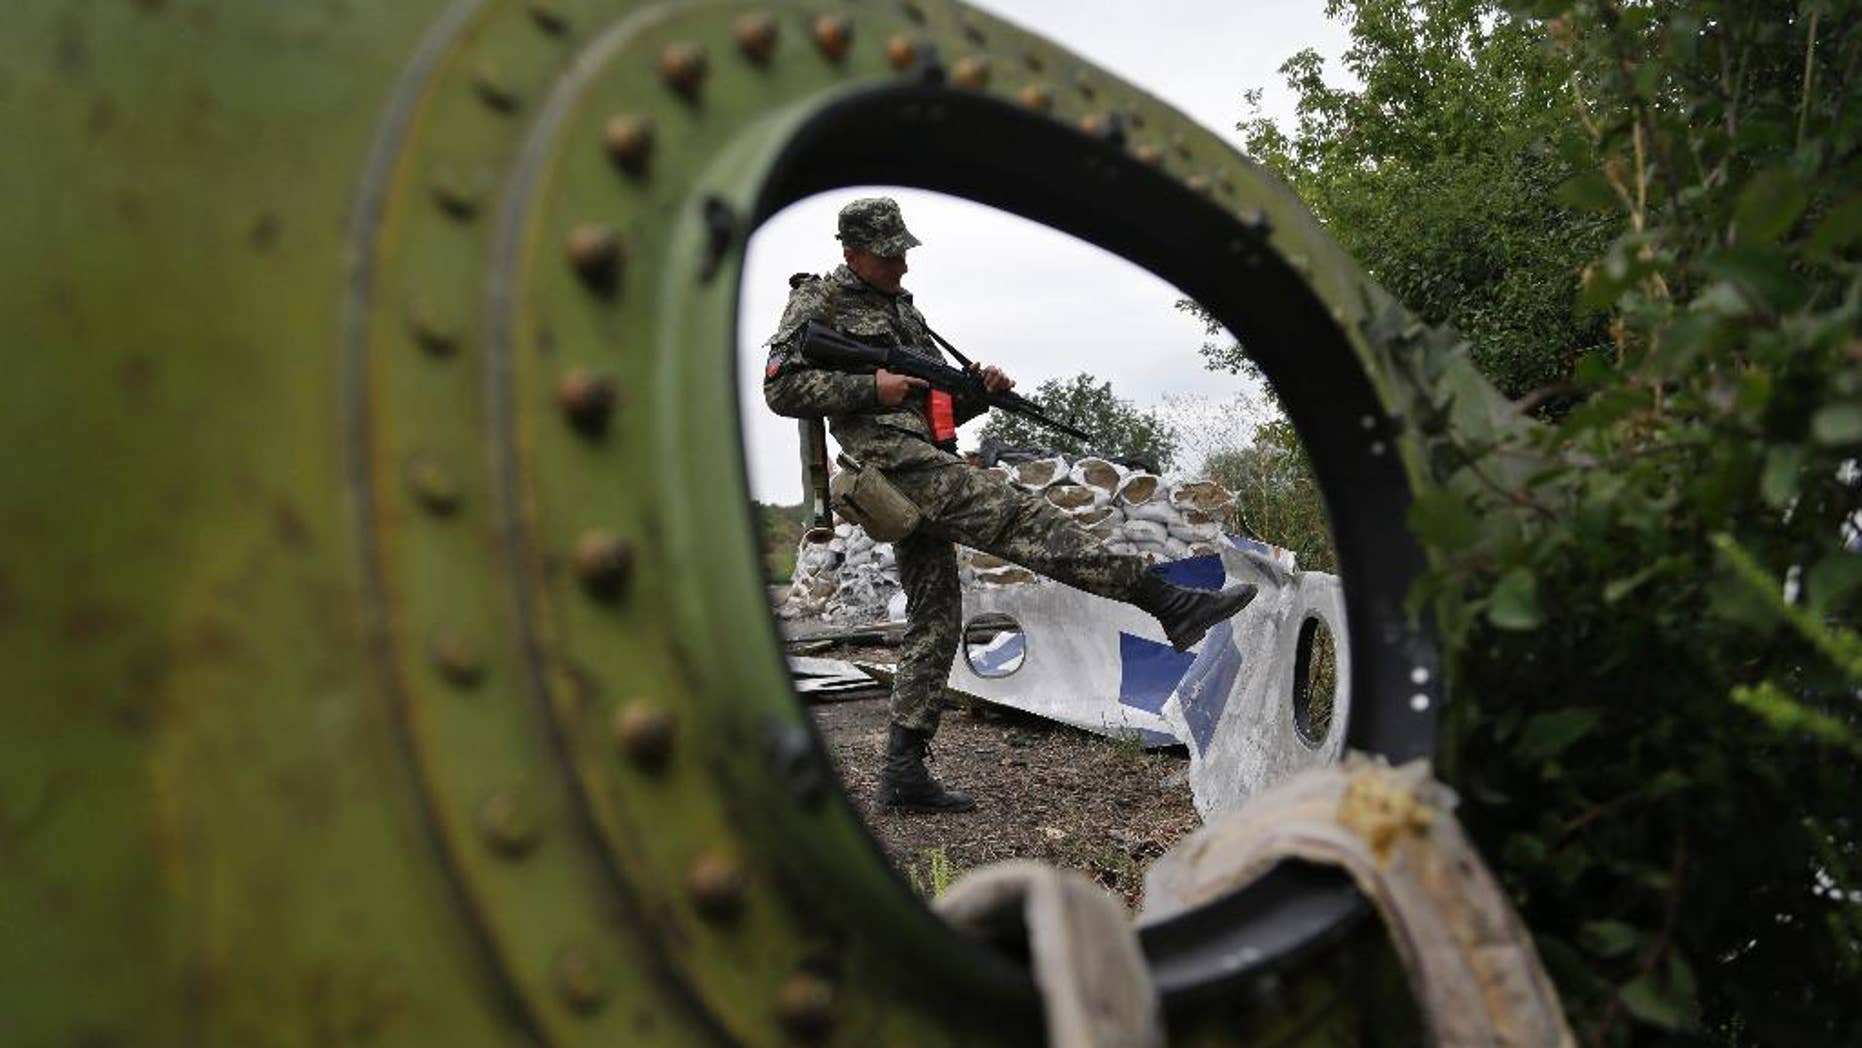 """AP10ThingsToSee- A Pro-Russian rebel looks at pieces of the Malaysia Airlines Flight 17 plane near village of Rozsypne, eastern Ukraine, Tuesday, Sept. 9, 2014. The Dutch team investigating the downing of Malaysia Airlines Flight 17 over Eastern Ukraine says the crash was likely caused by the plane being hit by multiple """"high-energy objects from outside the aircraft."""" (AP Photo/Sergei Grits)"""